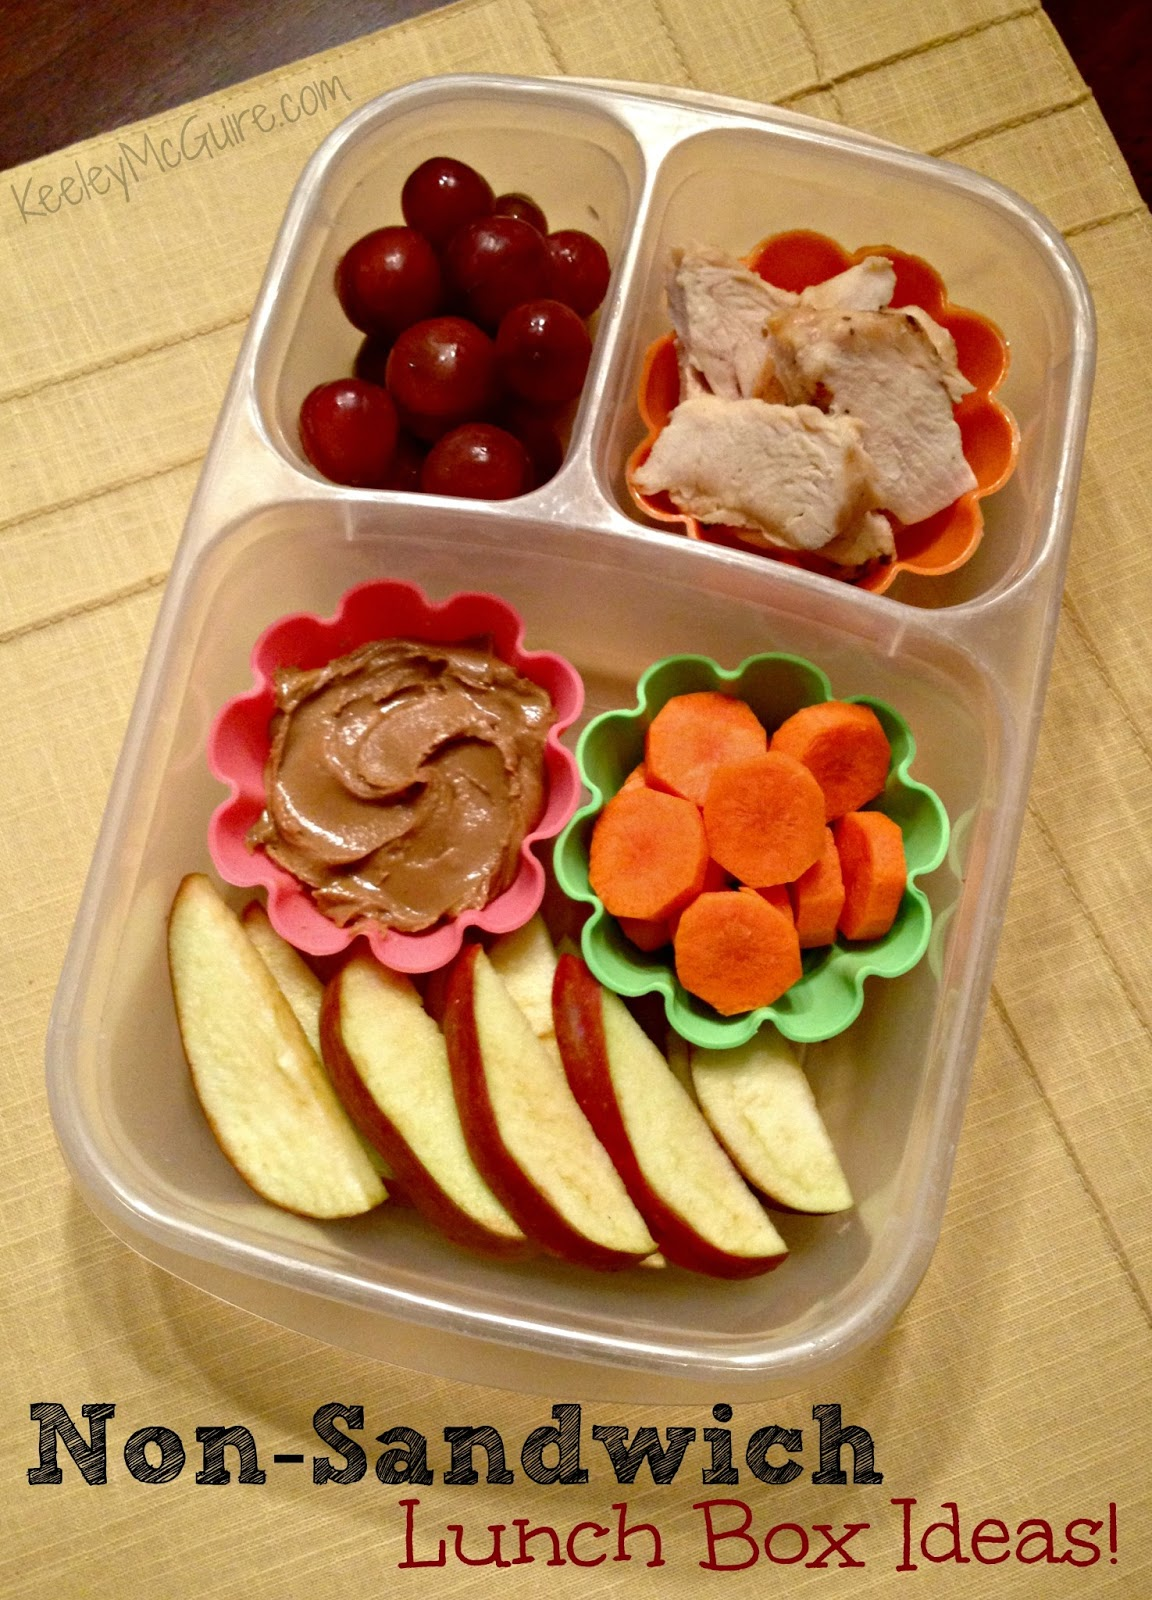 So browse through, jot down the lunch ideas your kids will love too and keep it handy so that you can have fun lunch ideas to make in a flash! 11 Non-Sandwich Lunch Box Ideas (10 School Days + A Bonus!) The first rule of cool lunch box making is that there are no rules. Remember that!